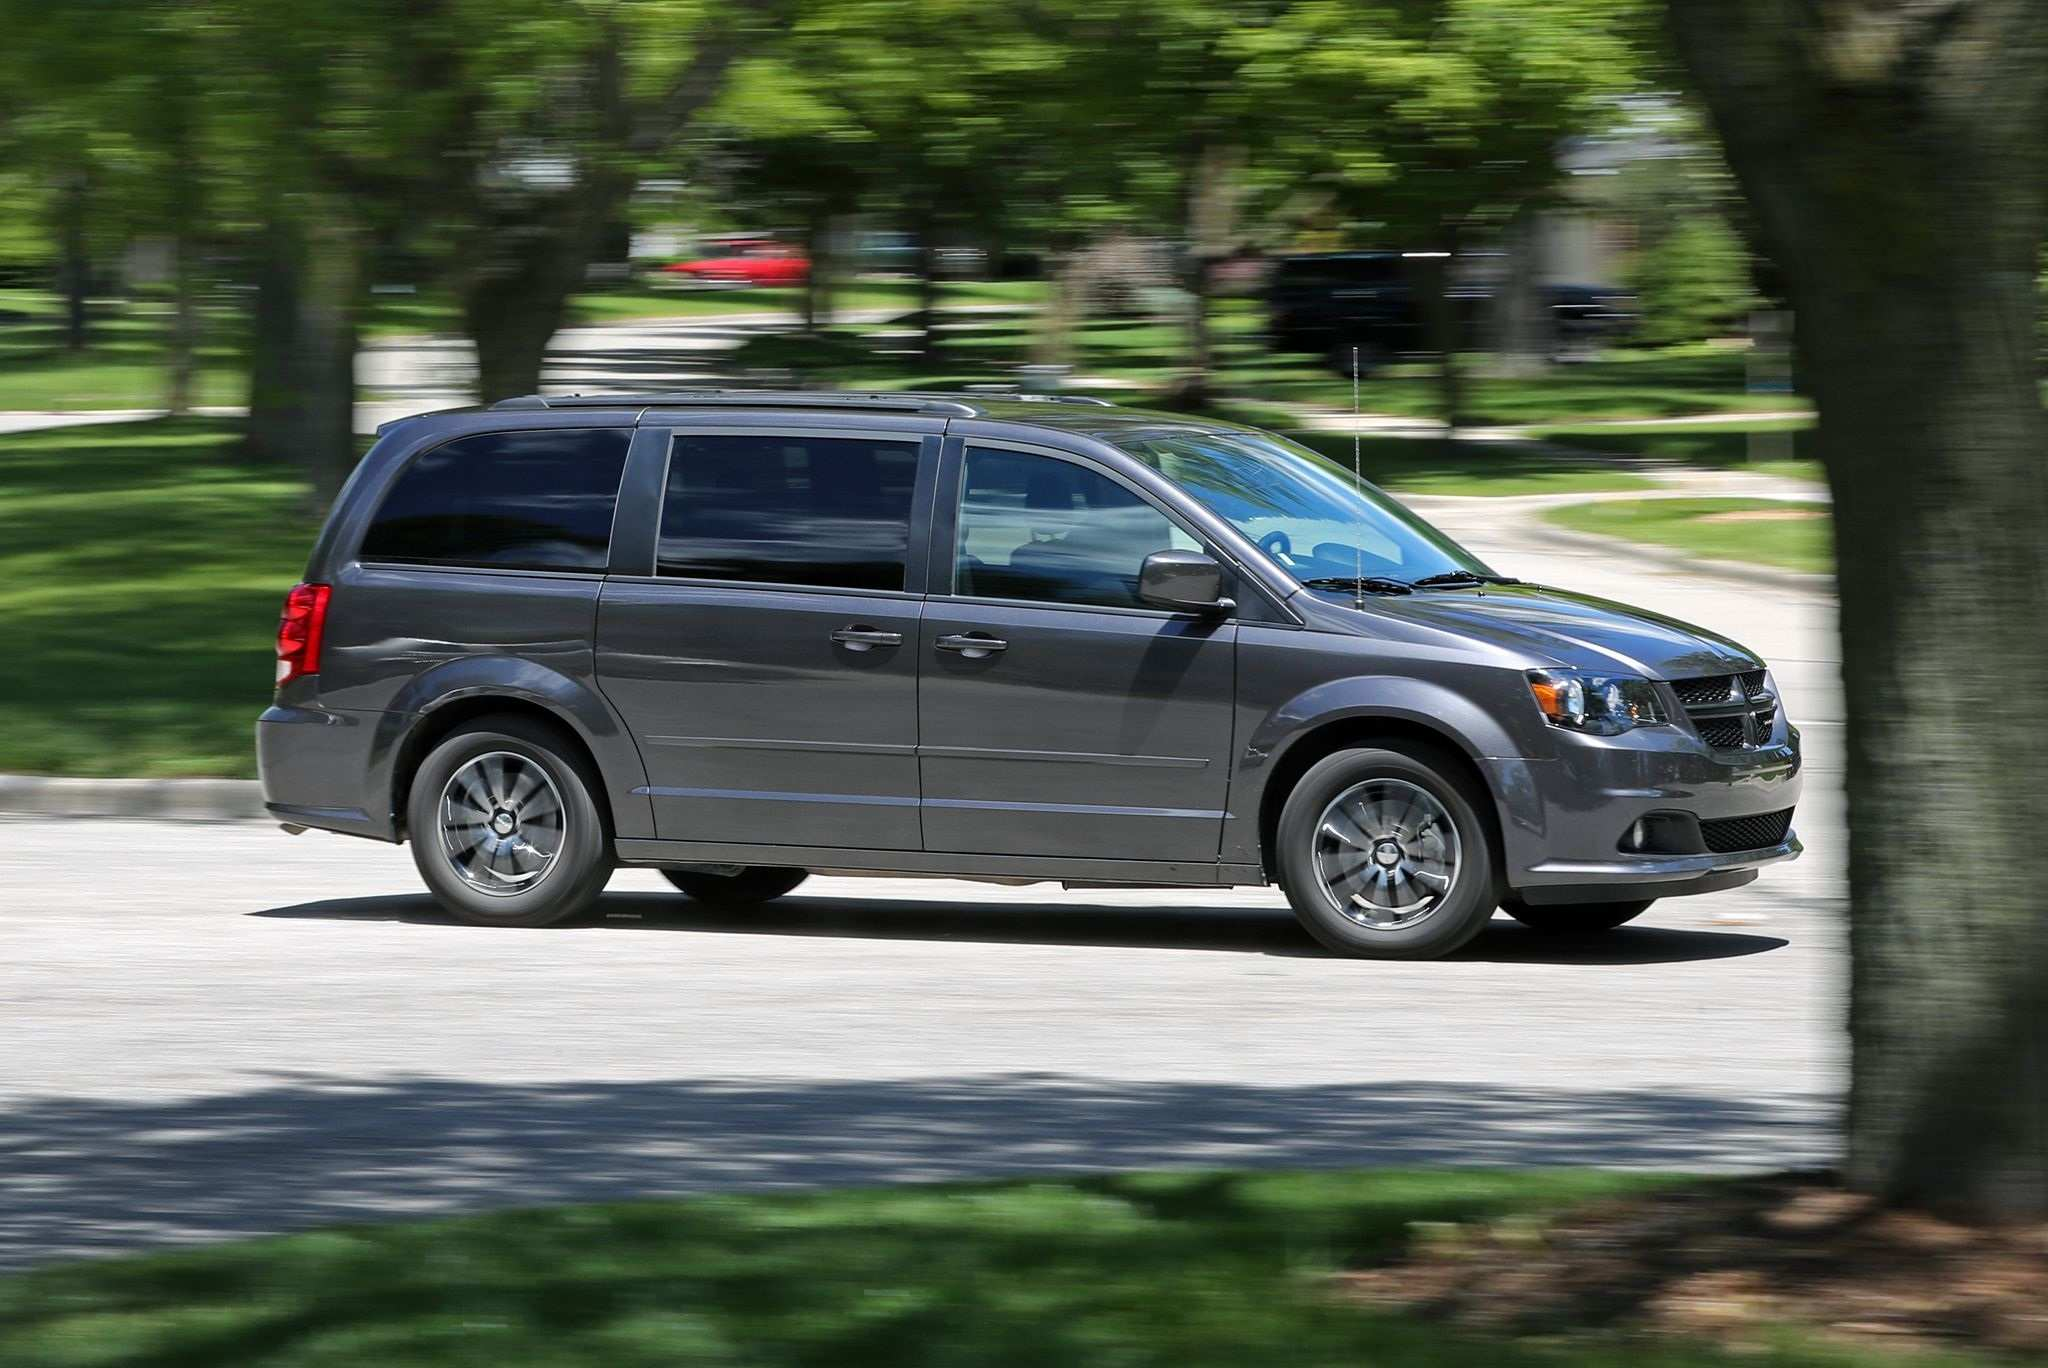 42 New 2020 Dodge Van Spesification by 2020 Dodge Van